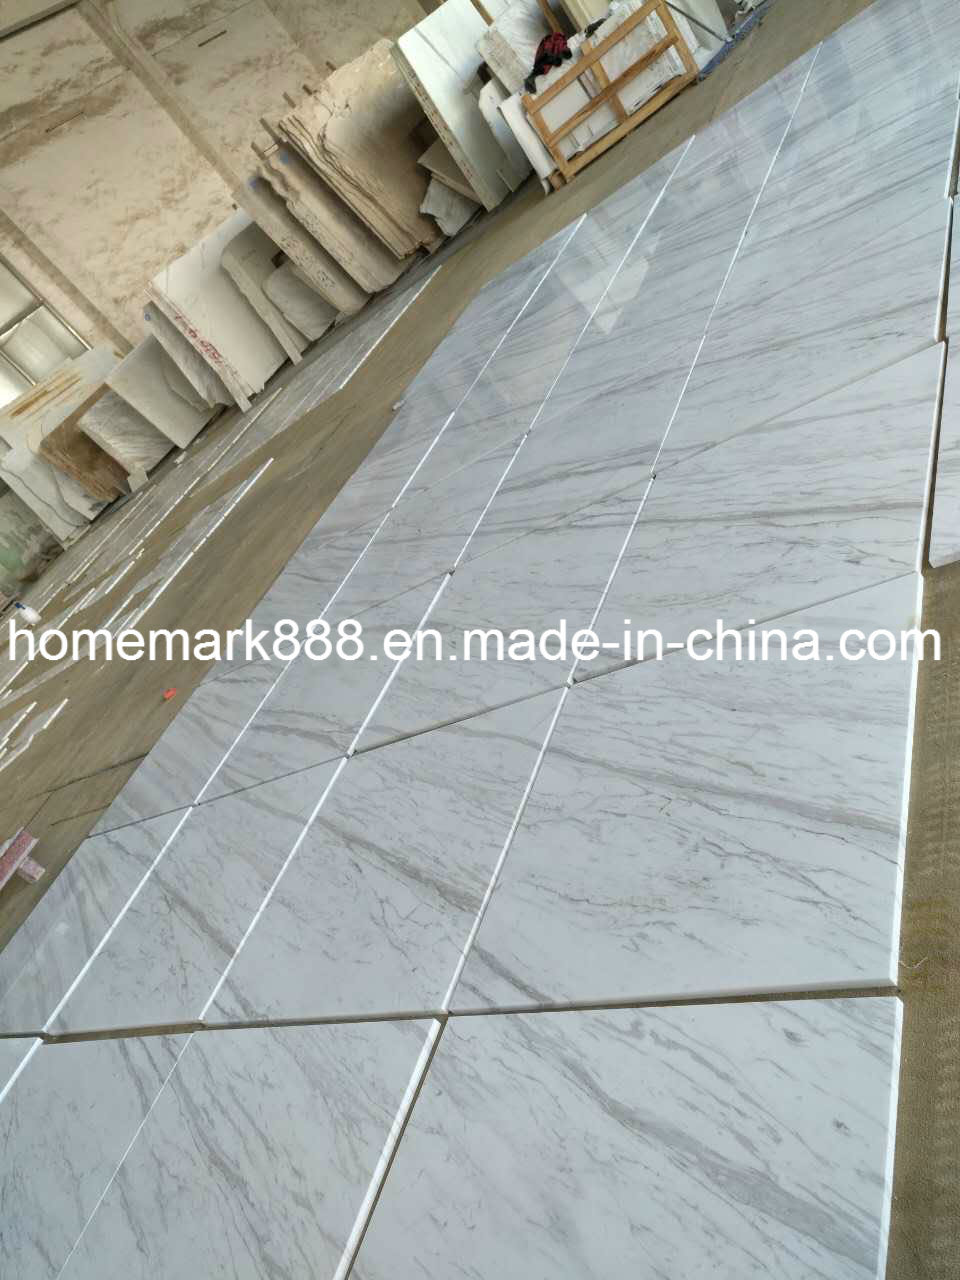 China Volakas Marble Tile, Wall Tile Volakas White Marble, Mable for ...